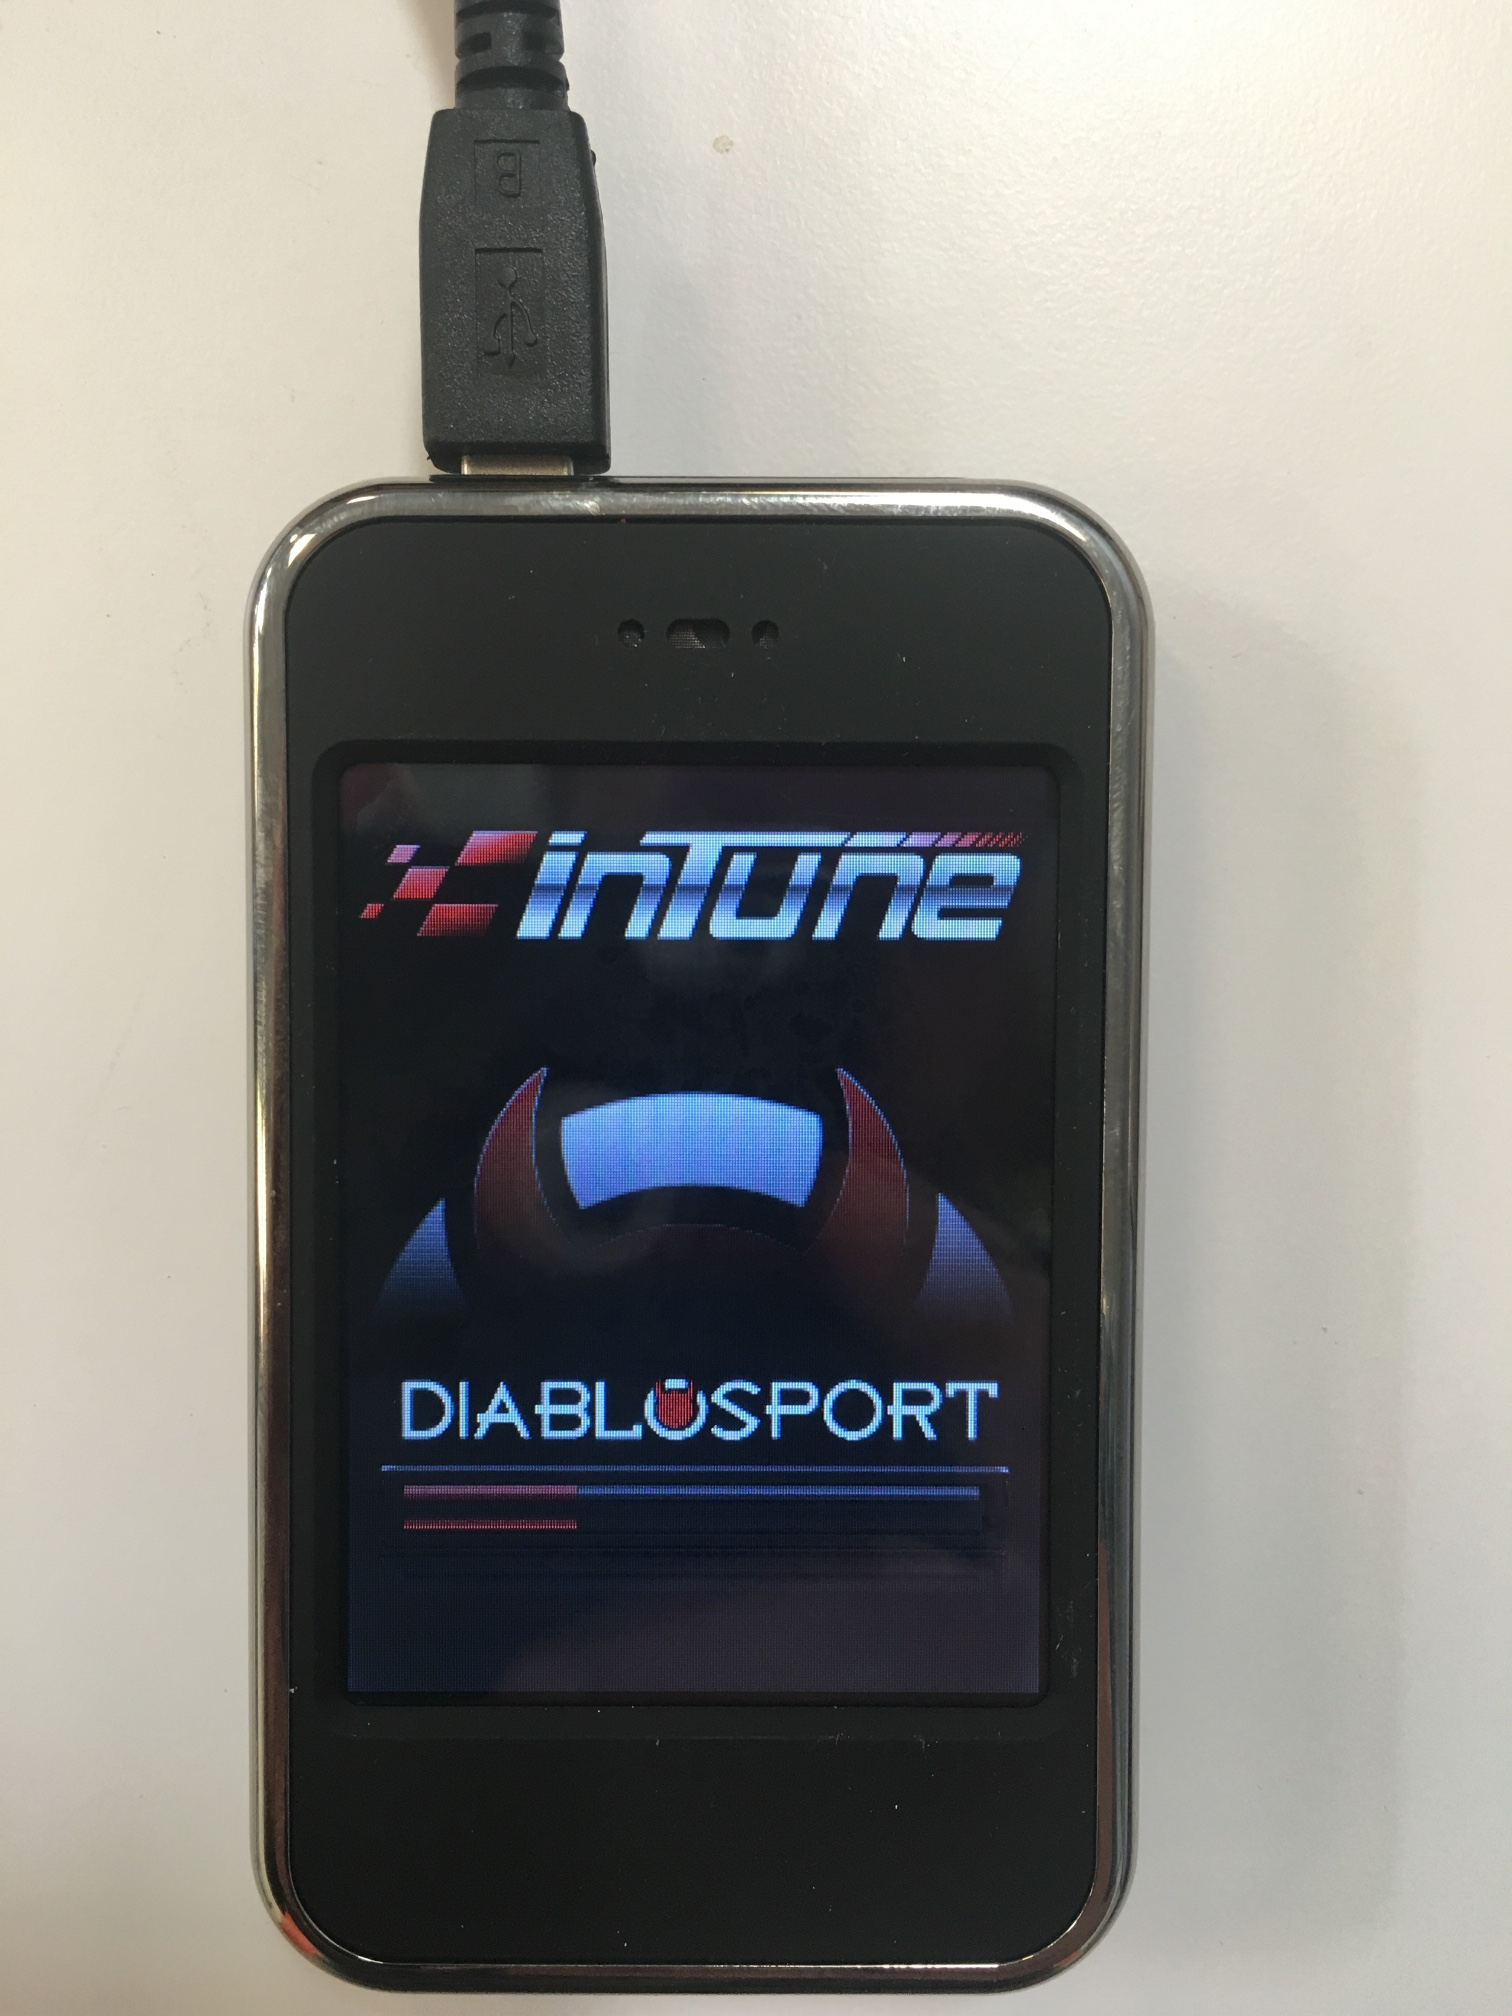 How to load email tunes onto my Diablosport InTune – BAMA